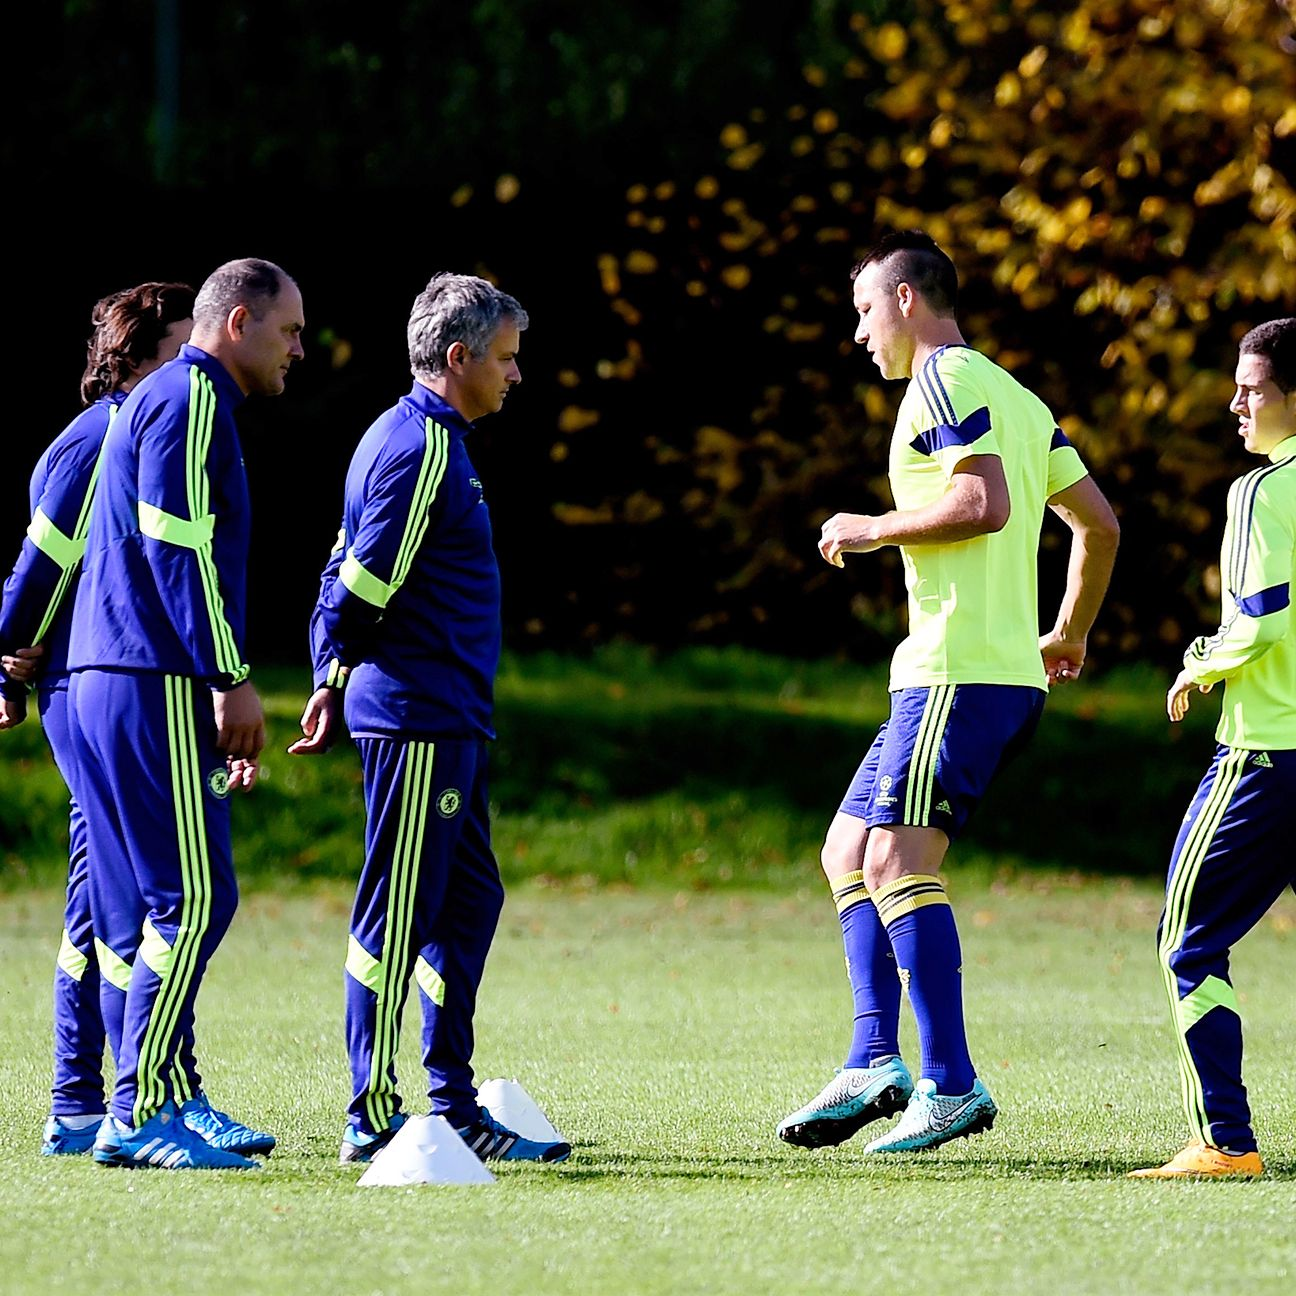 Mourinho's training ground focus on defence will be put to the test by Van Gaal's attacking forces.